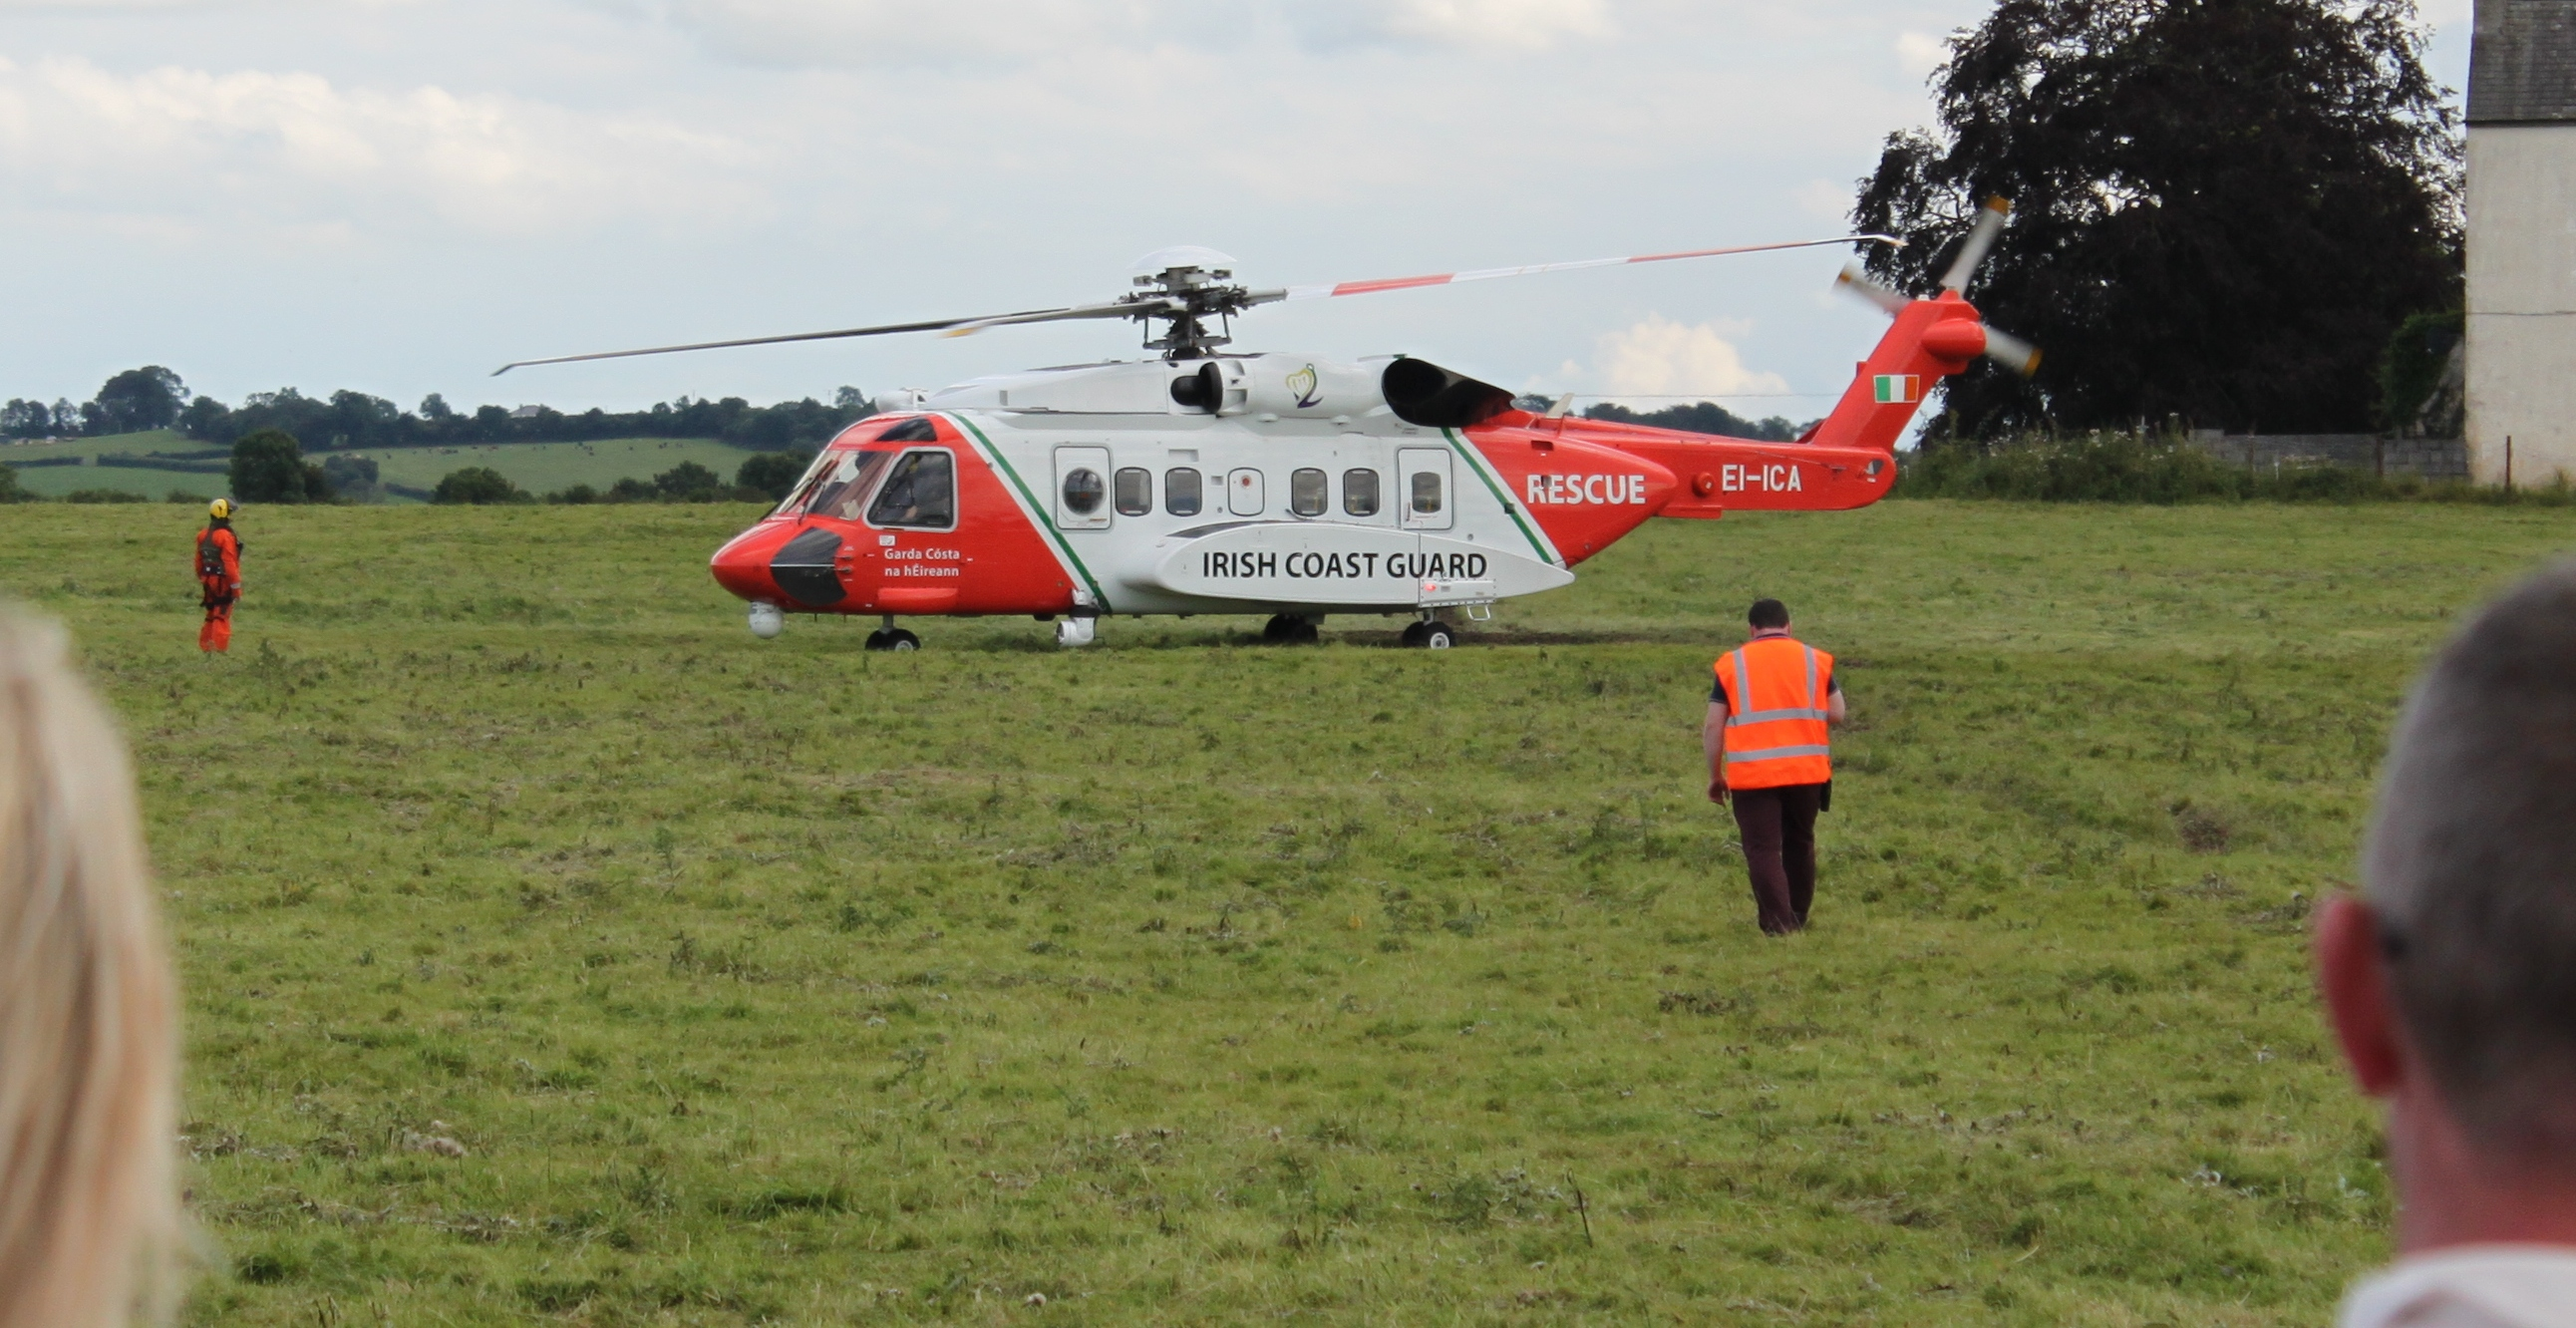 Rescue Helicopter. PIC: Stephen Byrne/KCLR